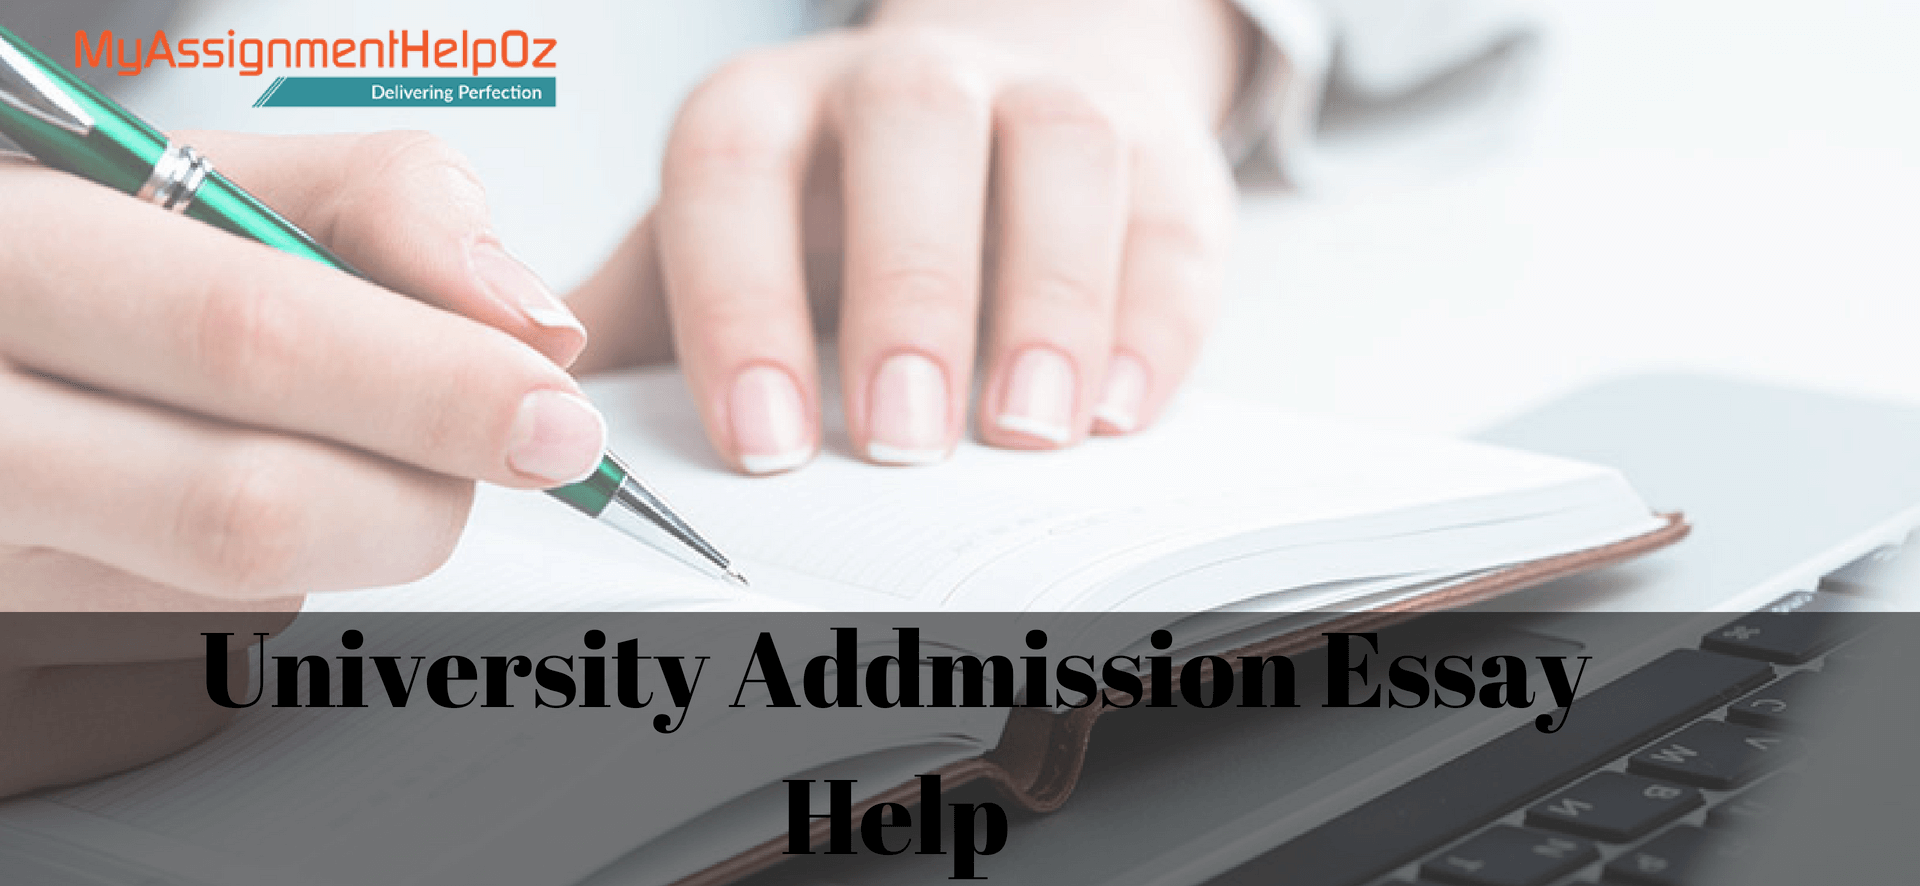 university addmission essay help